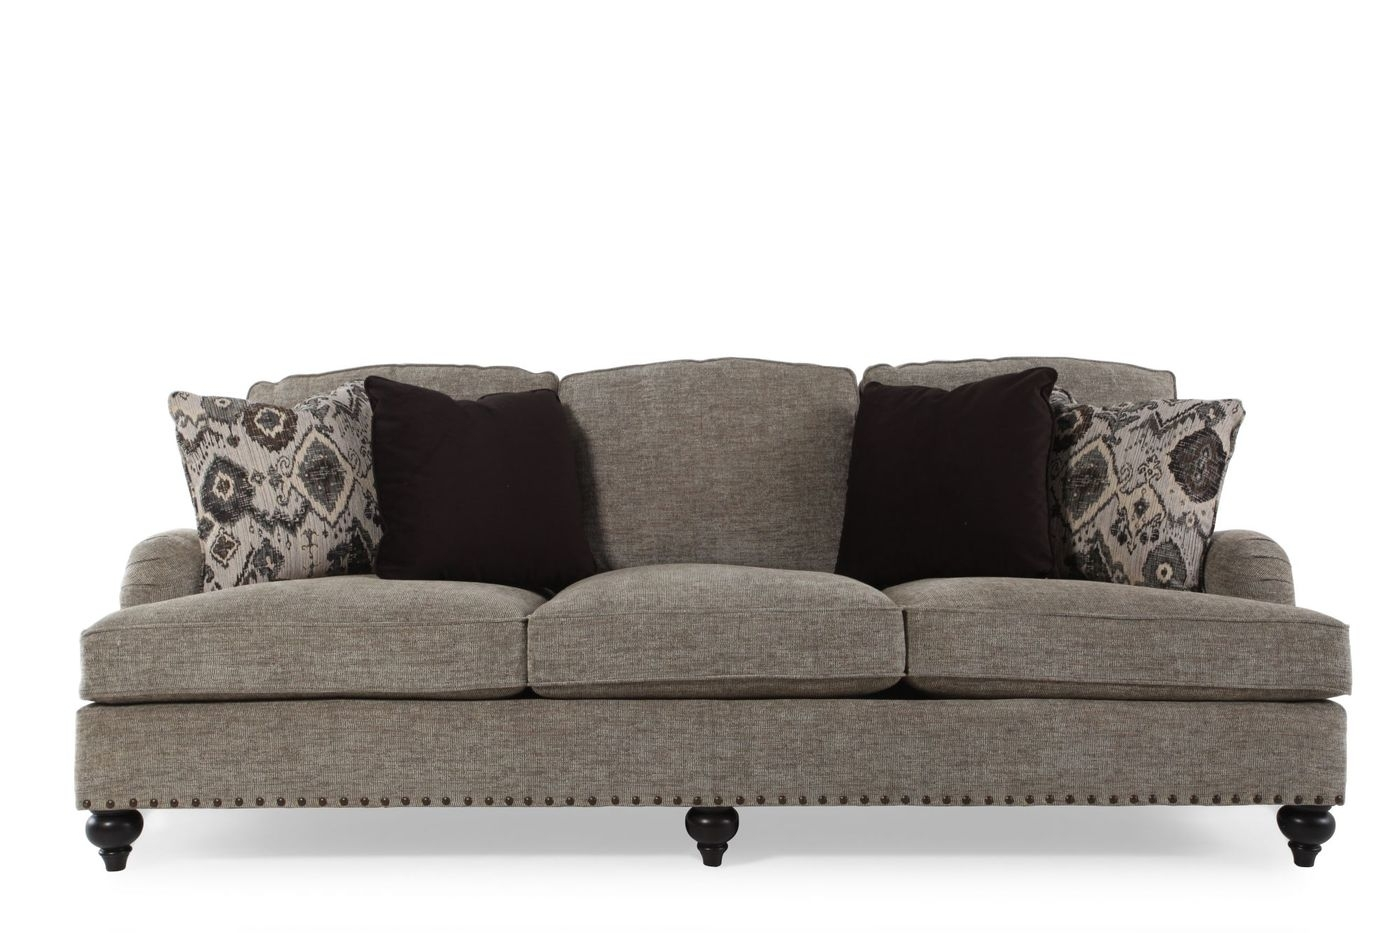 Mathis Brothers Leather Sofas – Fjellkjeden Pertaining To Mathis Brothers Sectional Sofas (Image 5 of 10)